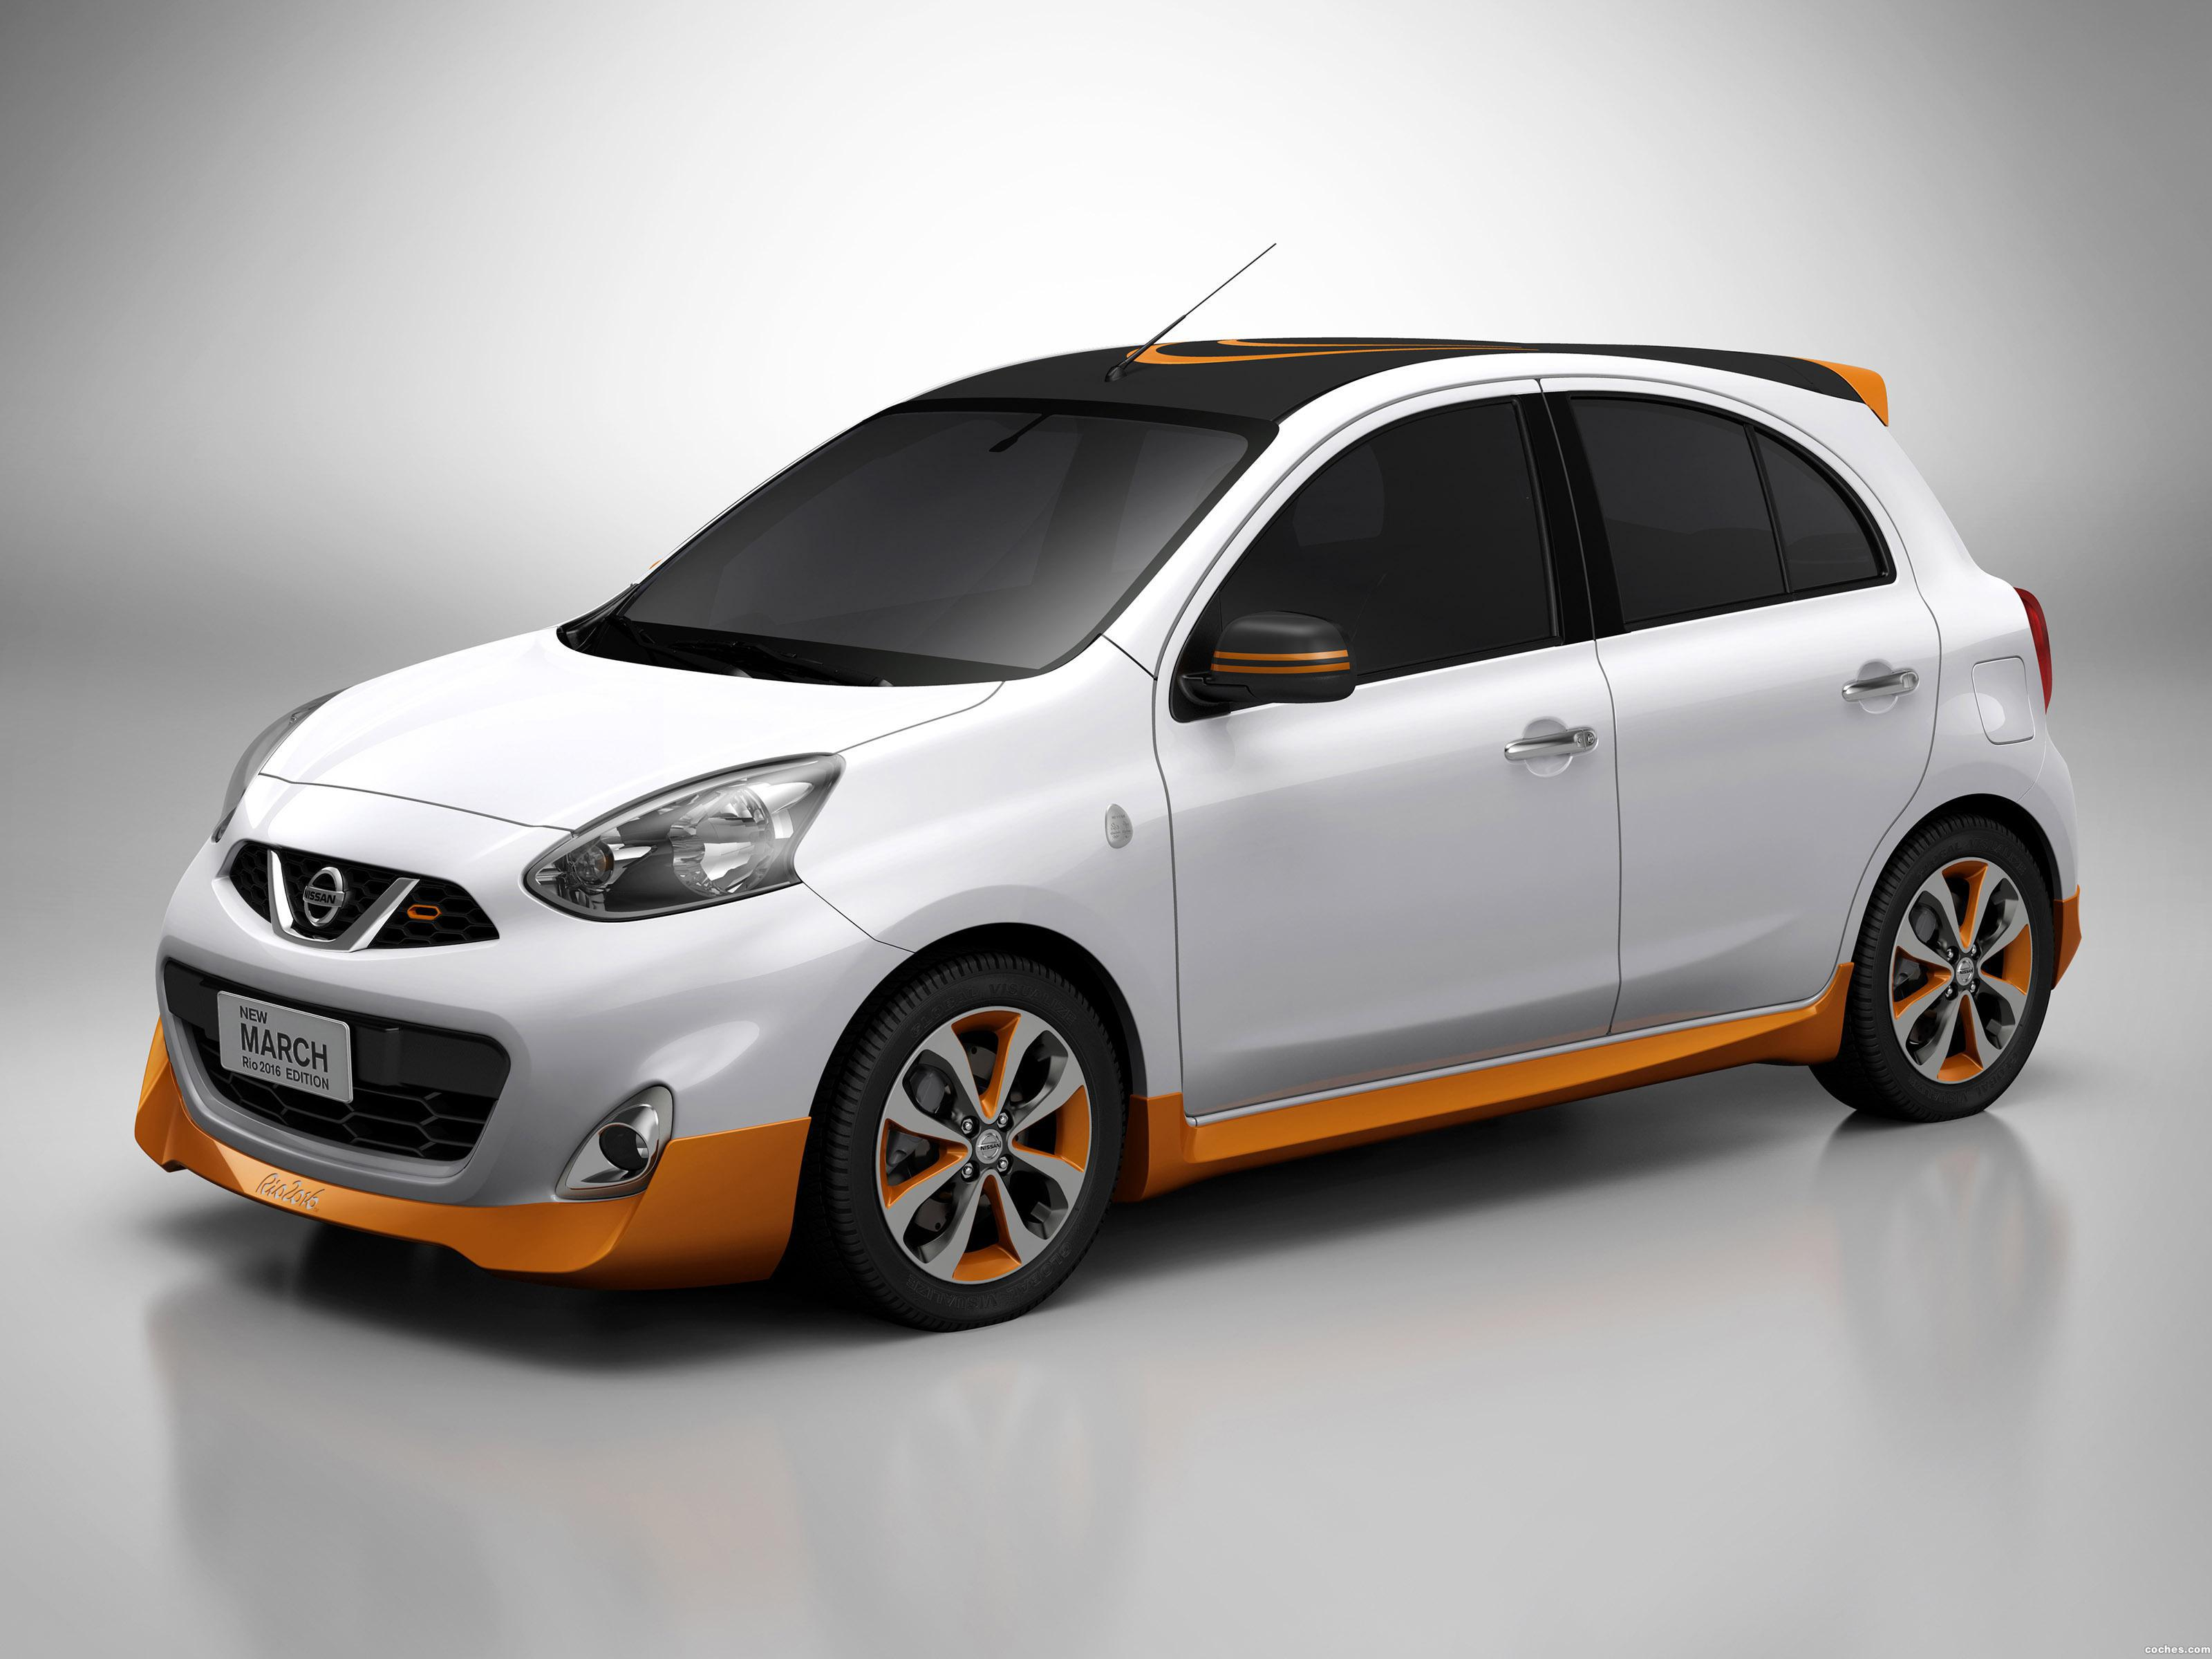 Foto 0 de Nissan March Rio 2016 Concept K13 2014